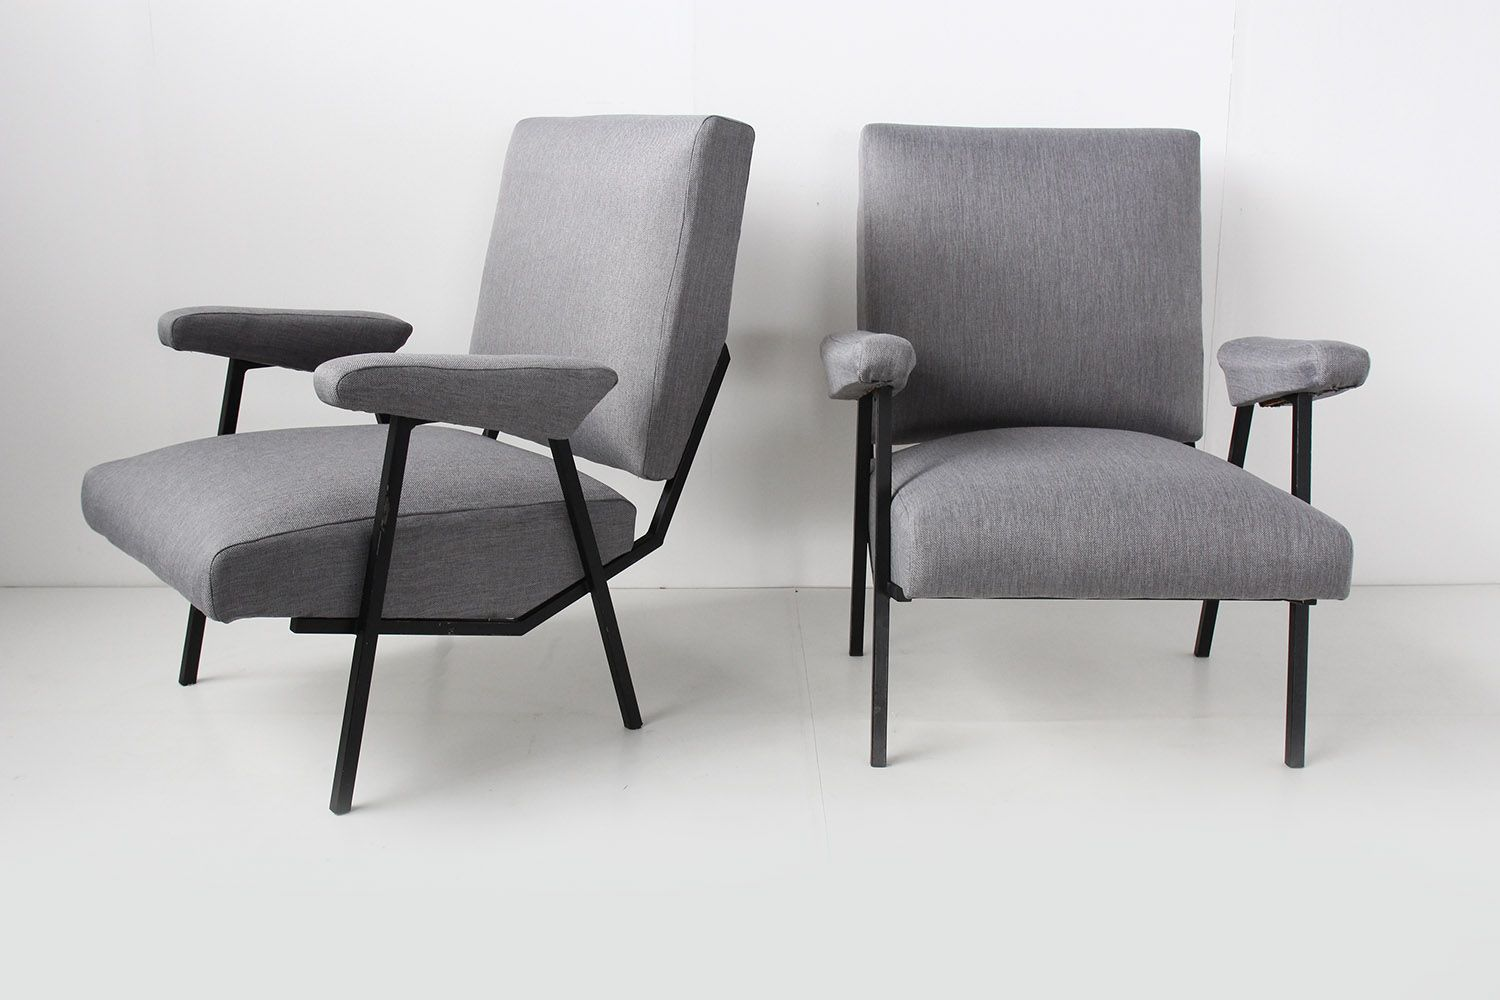 ITALIAN ARMCHAIRS Httpswwwgaleriecomcollection - Fauteuil design italien